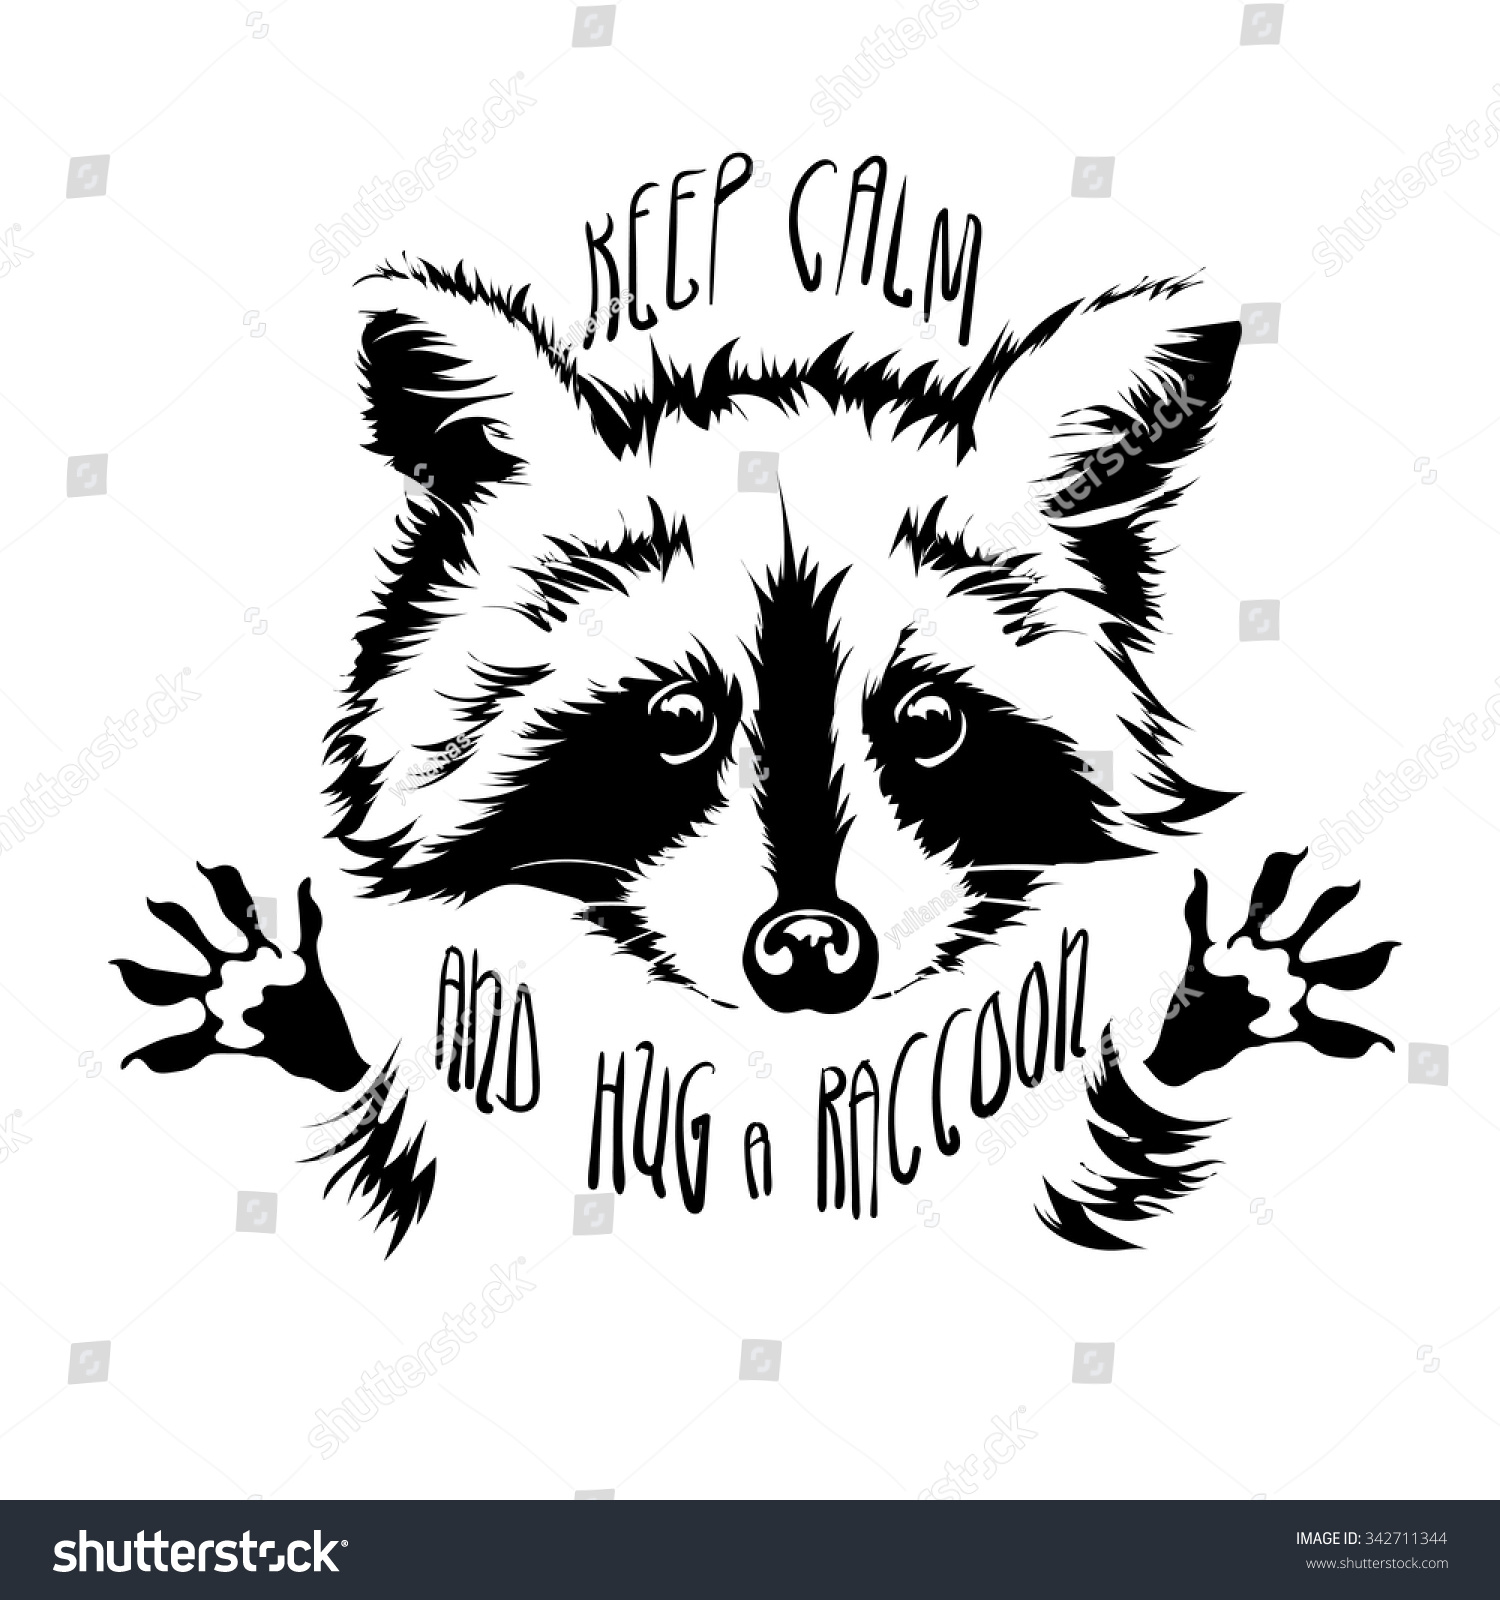 Raccoon Face Clip Art Black And White | galleryhip.com ... Raccoon Face Clip Art Black And White